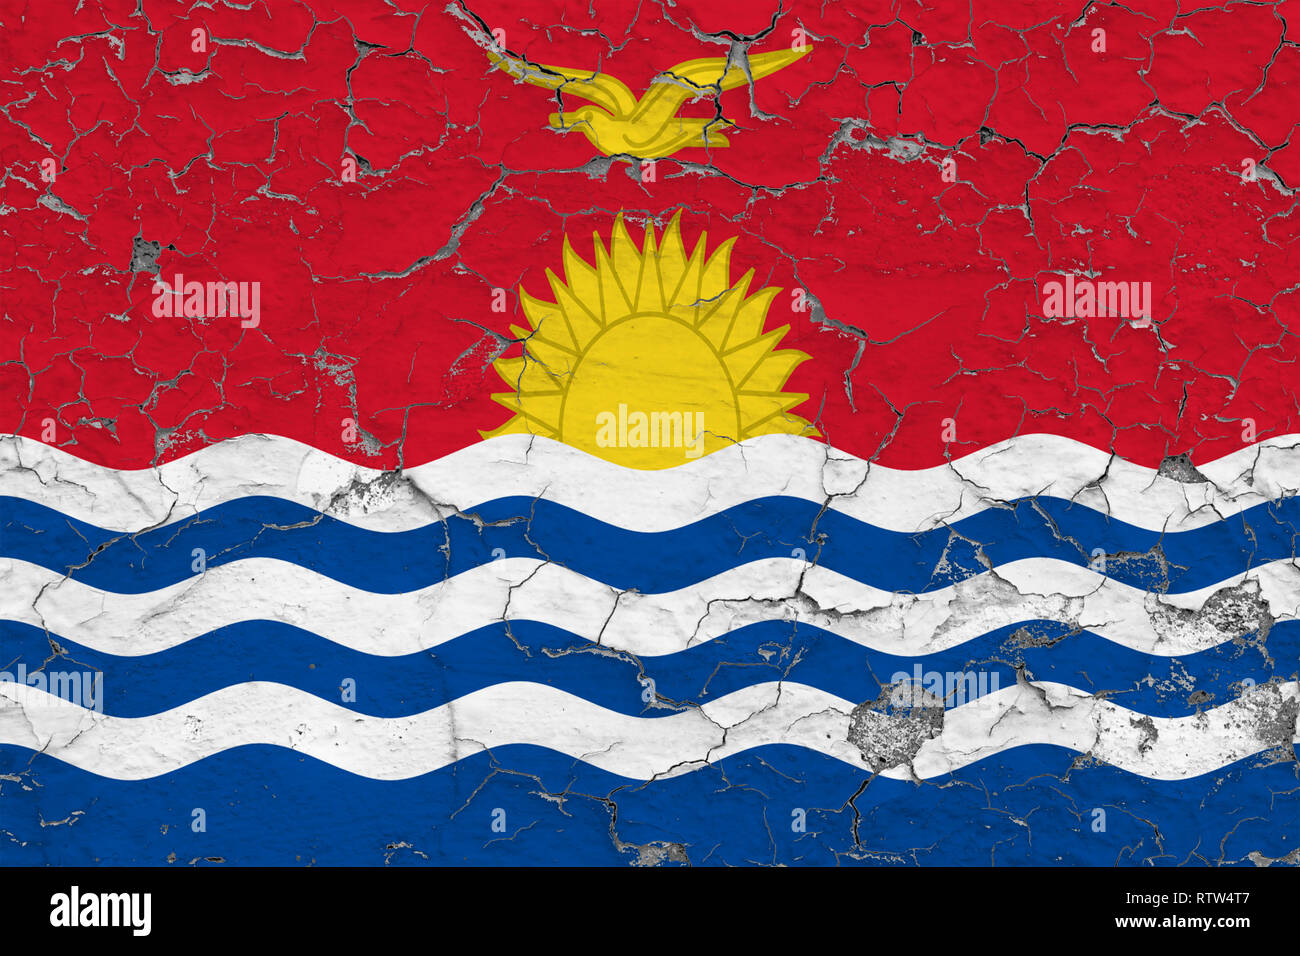 Flag of Kiribati painted on cracked dirty wall. National pattern on vintage style surface. - Stock Image